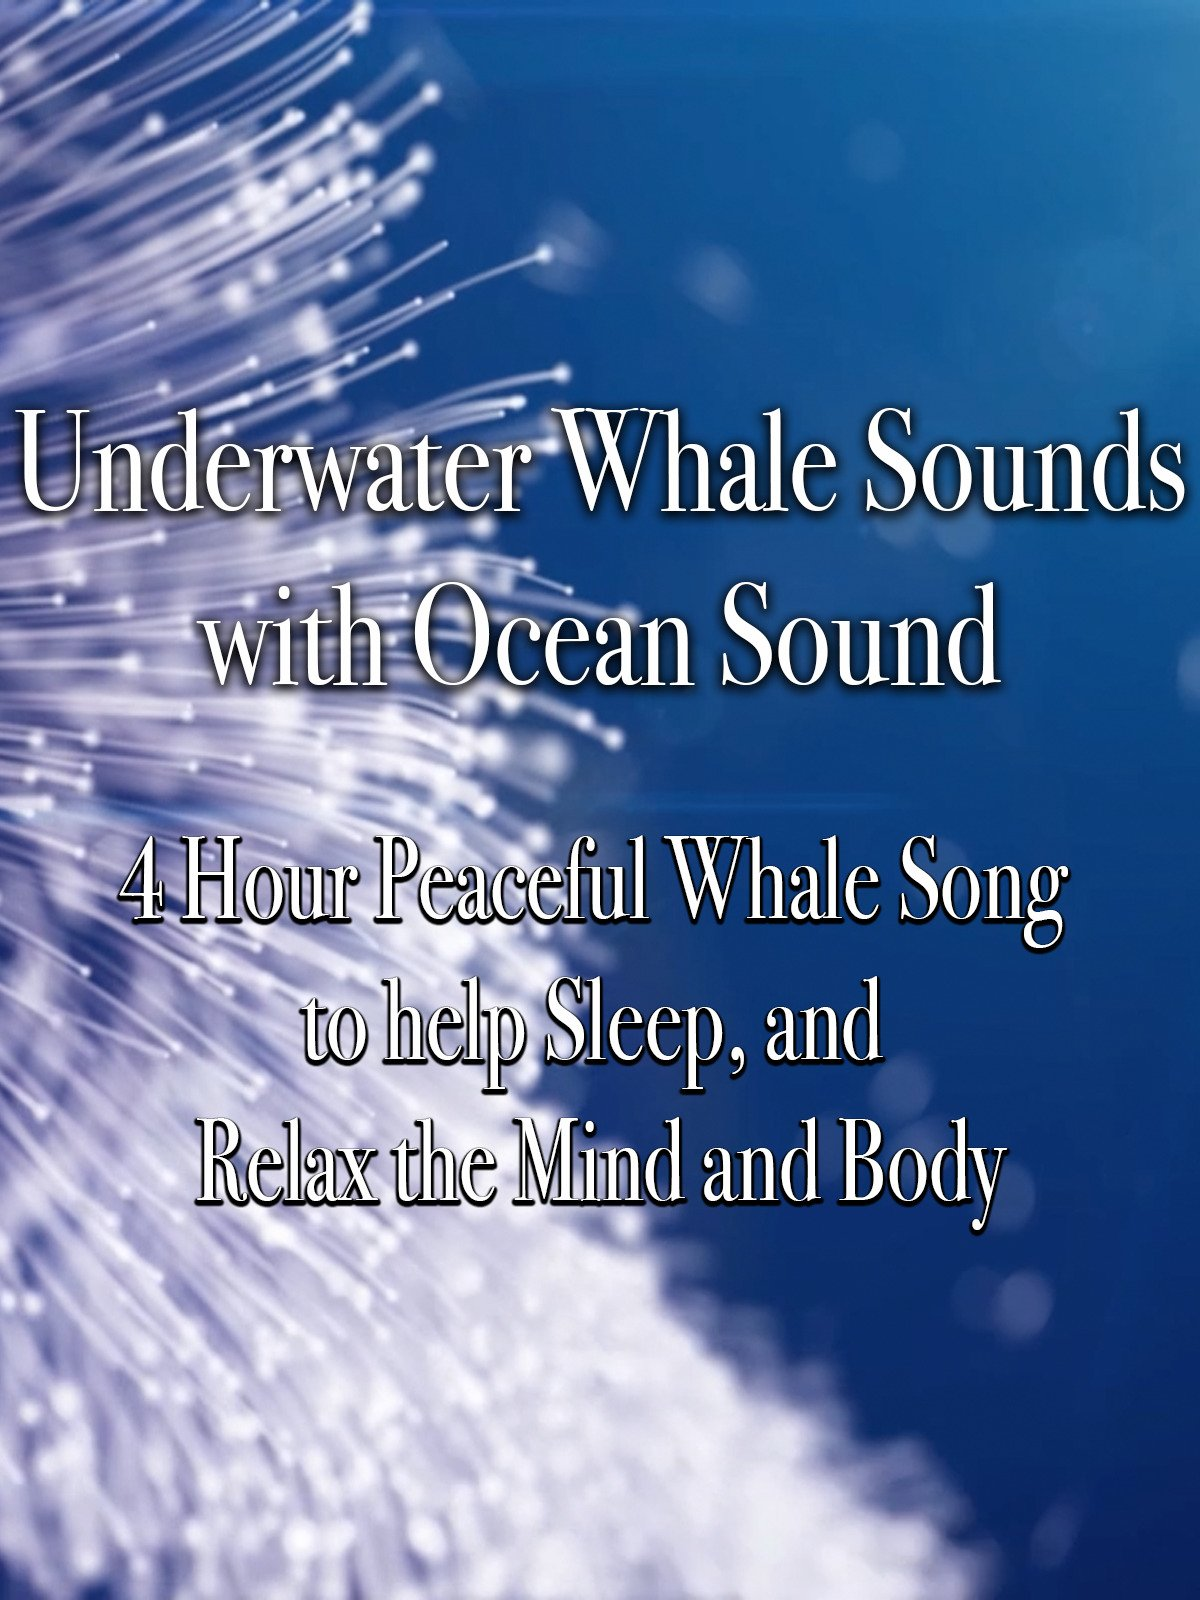 Underwater Whale Sounds with Ocean 4 Hour Peaceful Whale Song to help Sleep, and Relax the Mind and Body